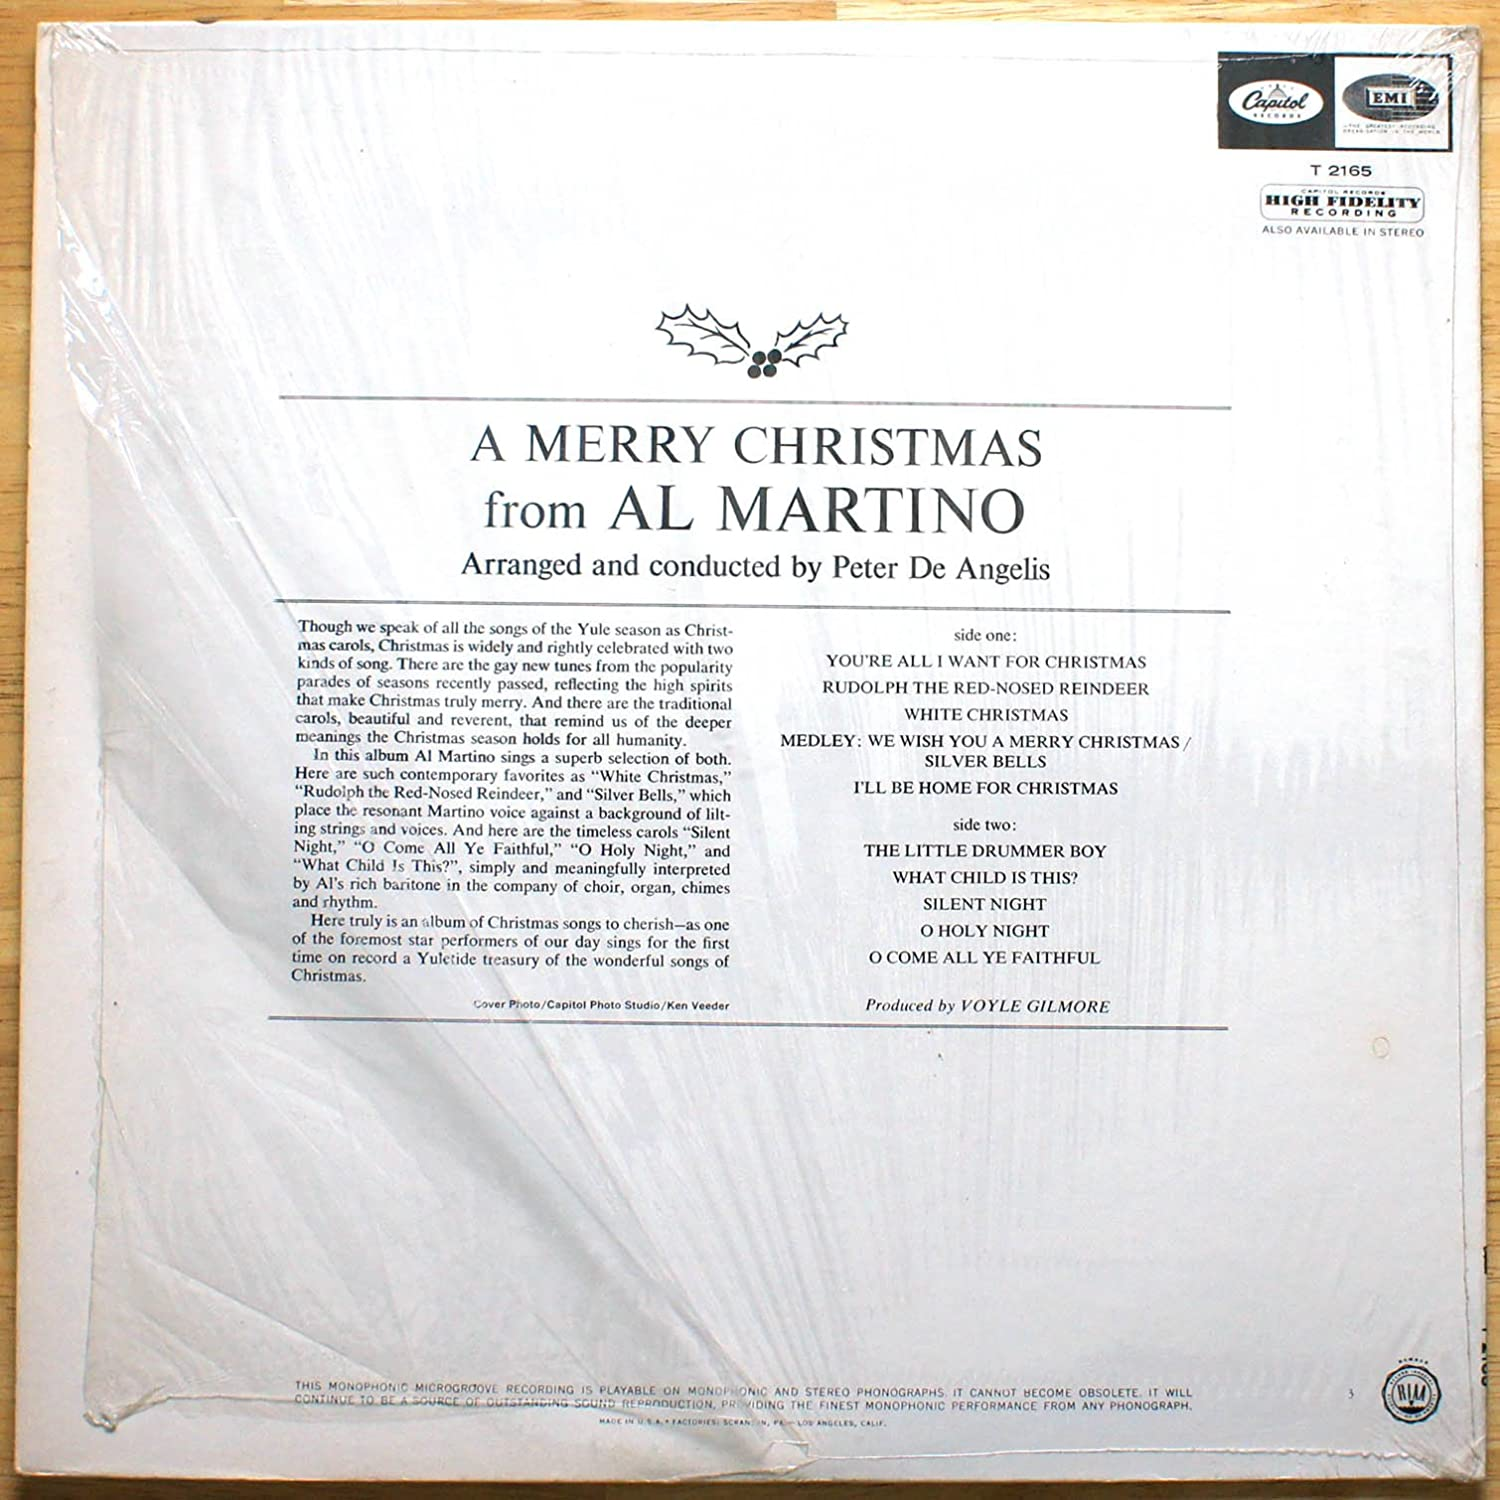 Al Martino - A Merry Christmas - Amazon.com Music